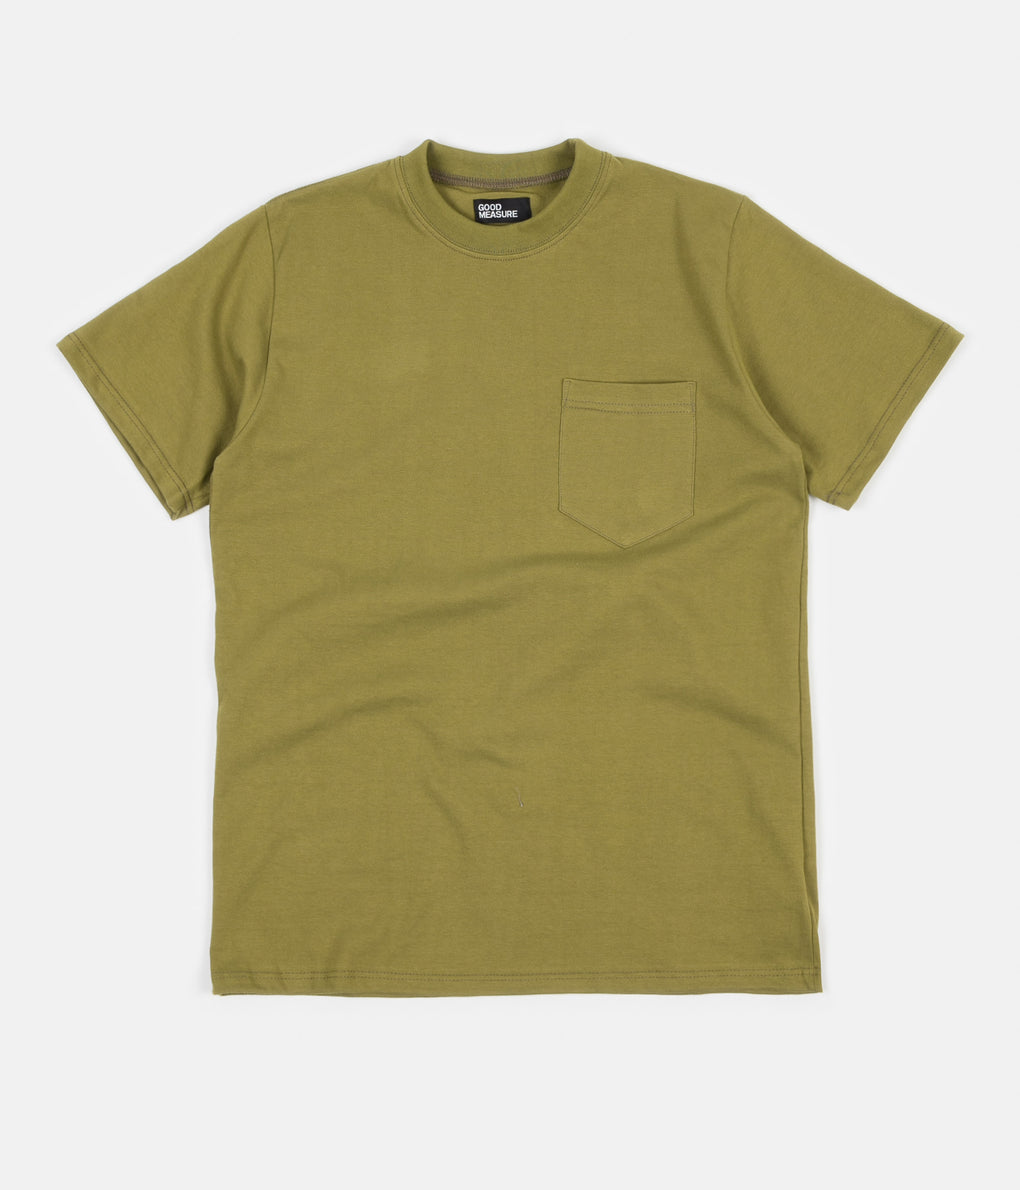 Good Measure M-4 'Lonely Hearts' John Pocket T-Shirt - Olive